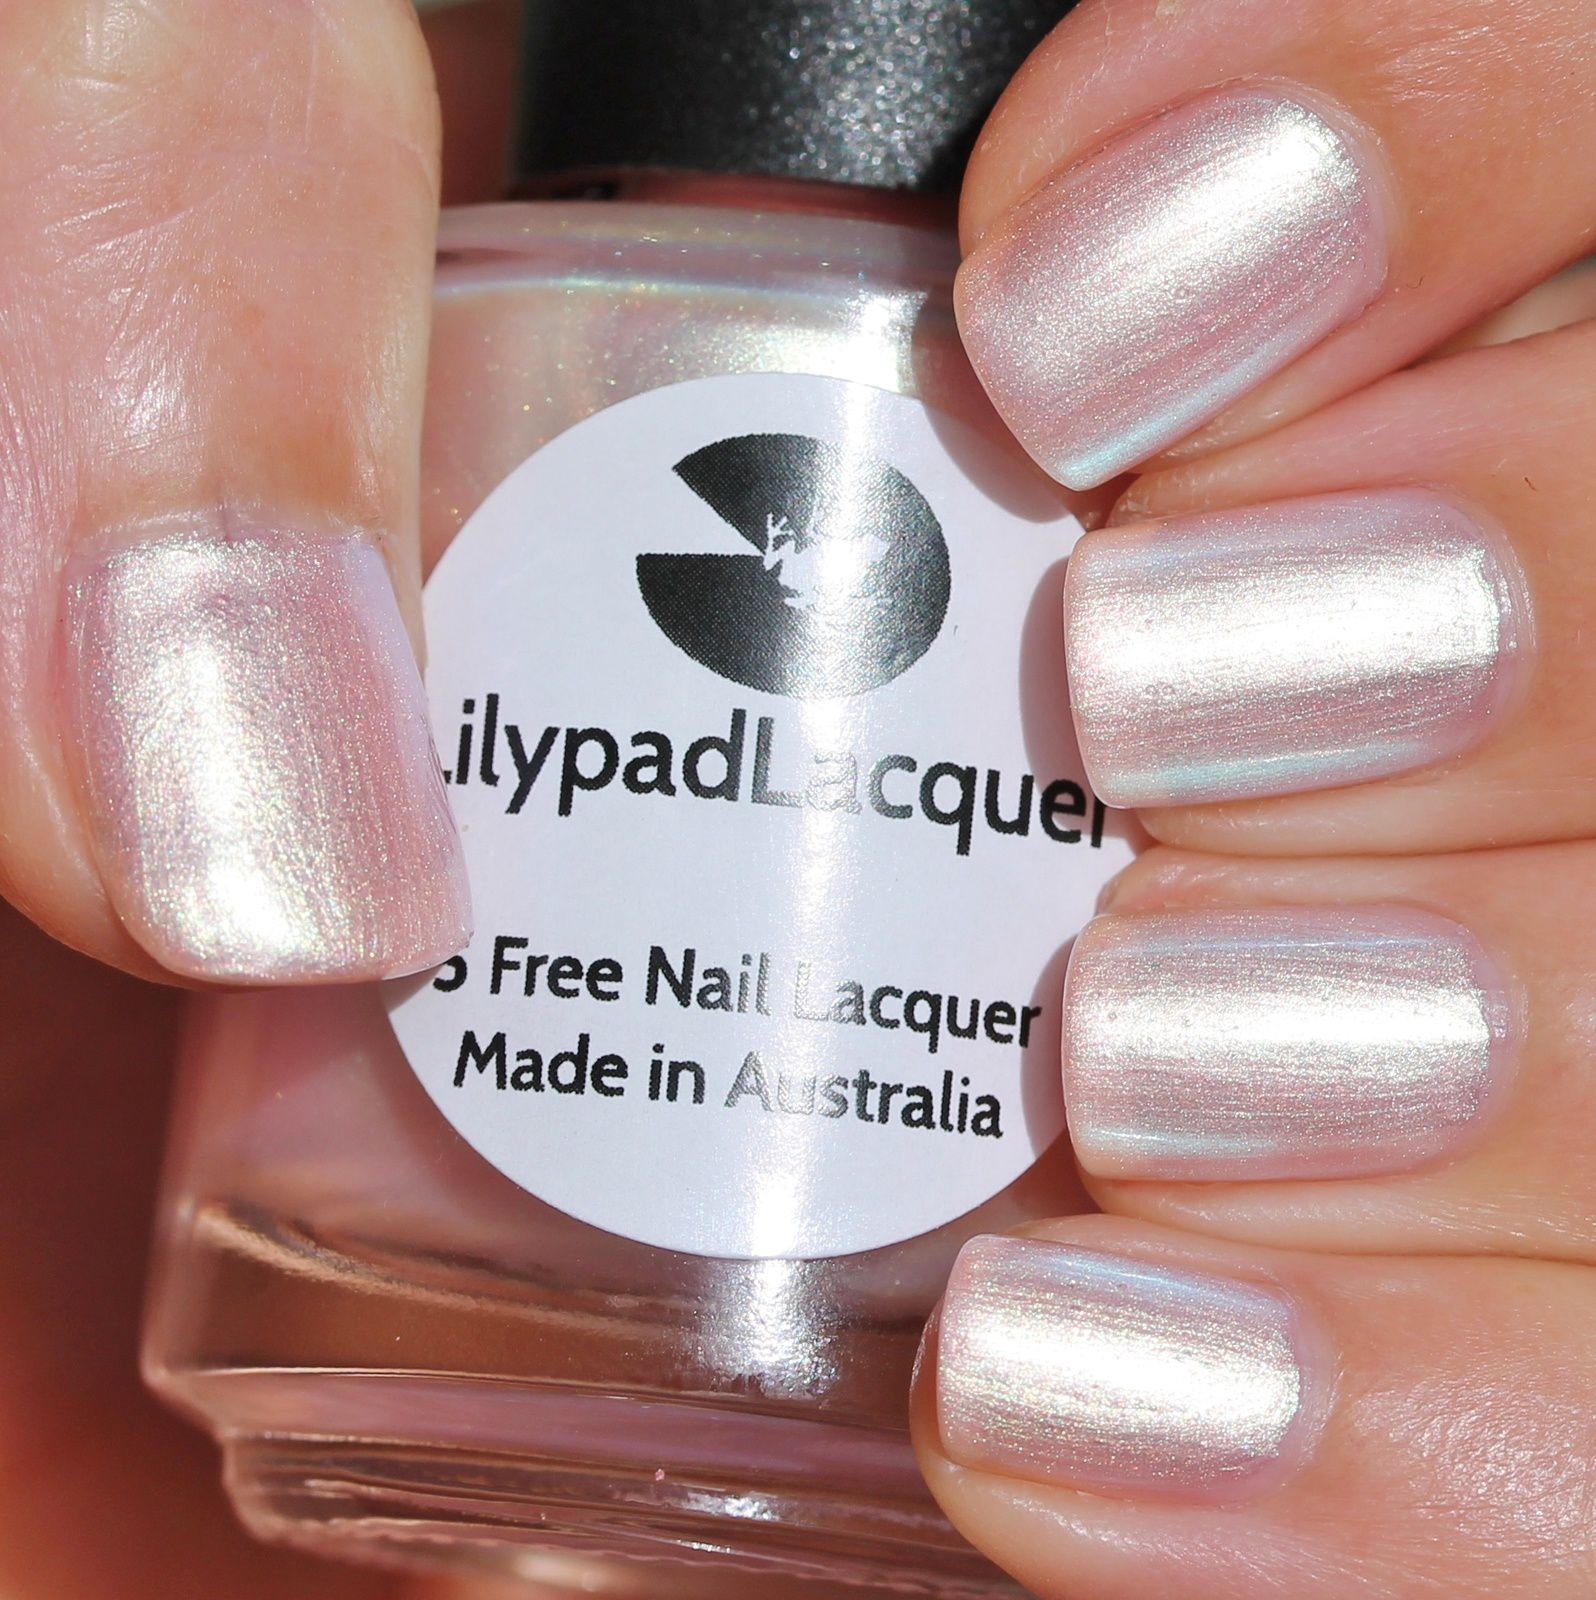 Sally Hansen Complete Care 4-in-1 Extra Moisturizing Nail Treatment / Lilypad Lacquer Satin Sheets / Poshe Top Coat